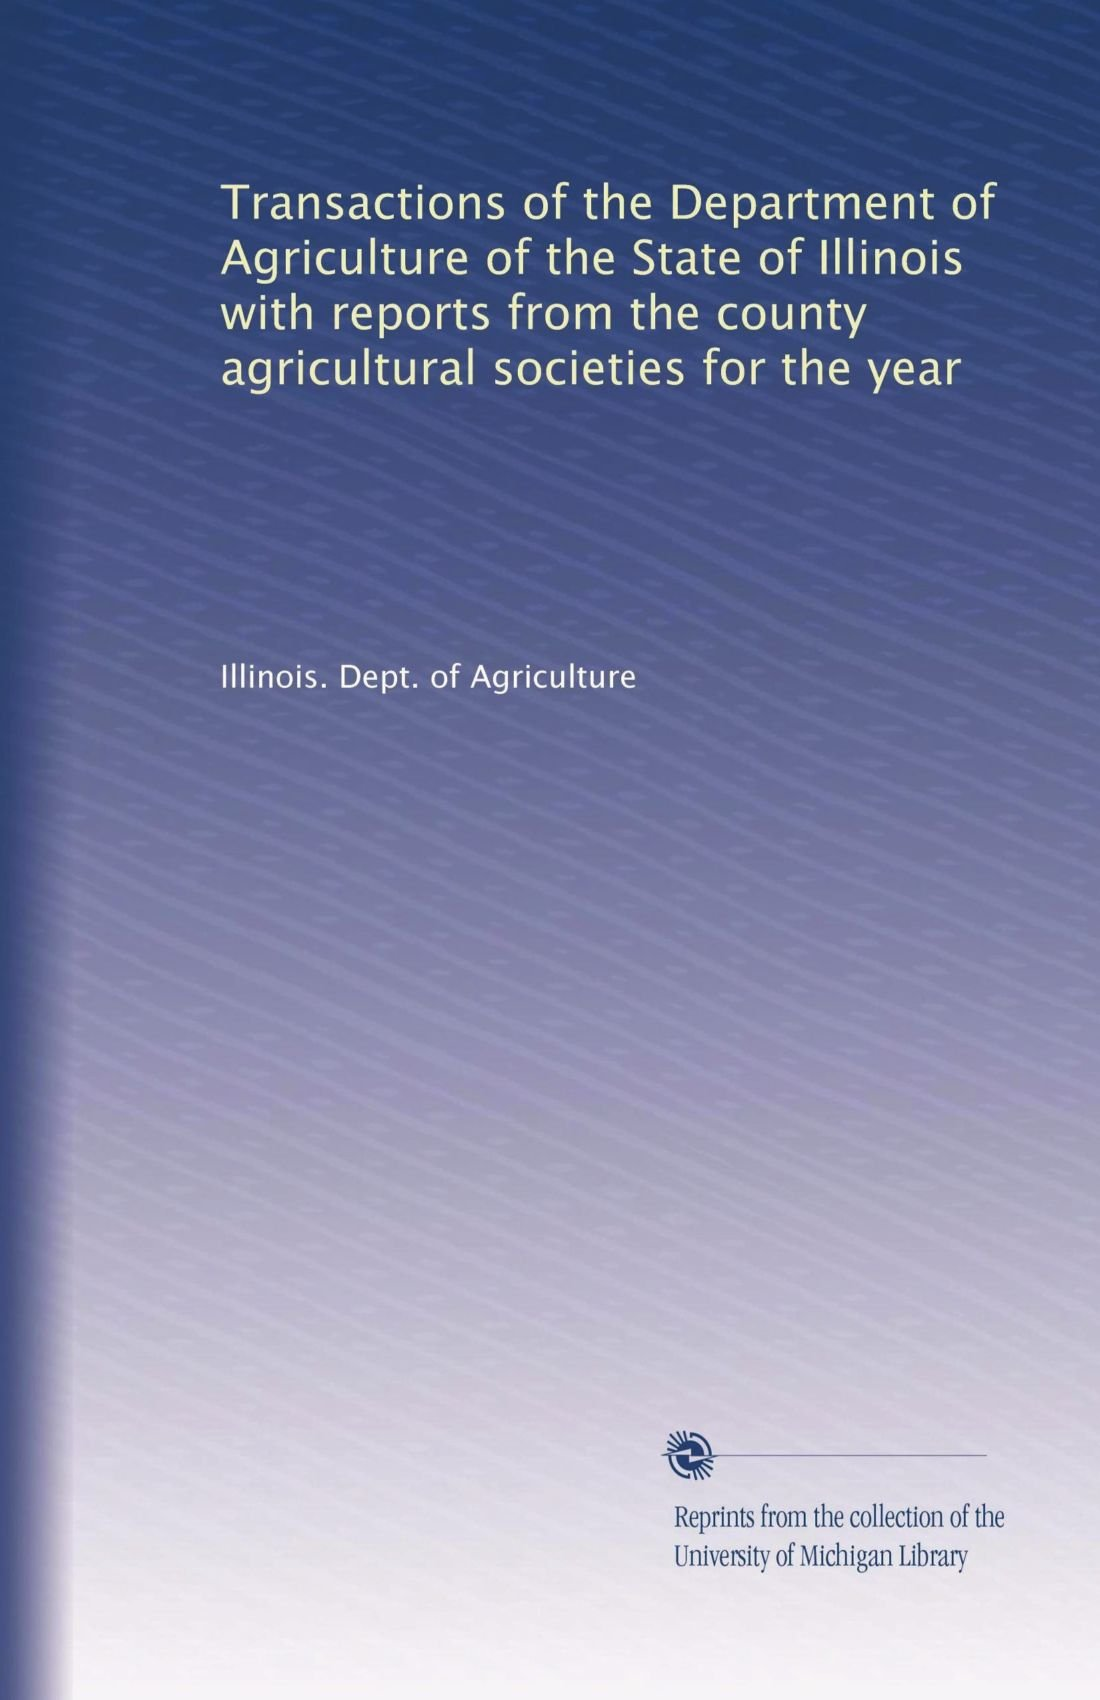 Transactions of the Department of Agriculture of the State of Illinois with reports from the county agricultural societies for the year (Volume 5) PDF